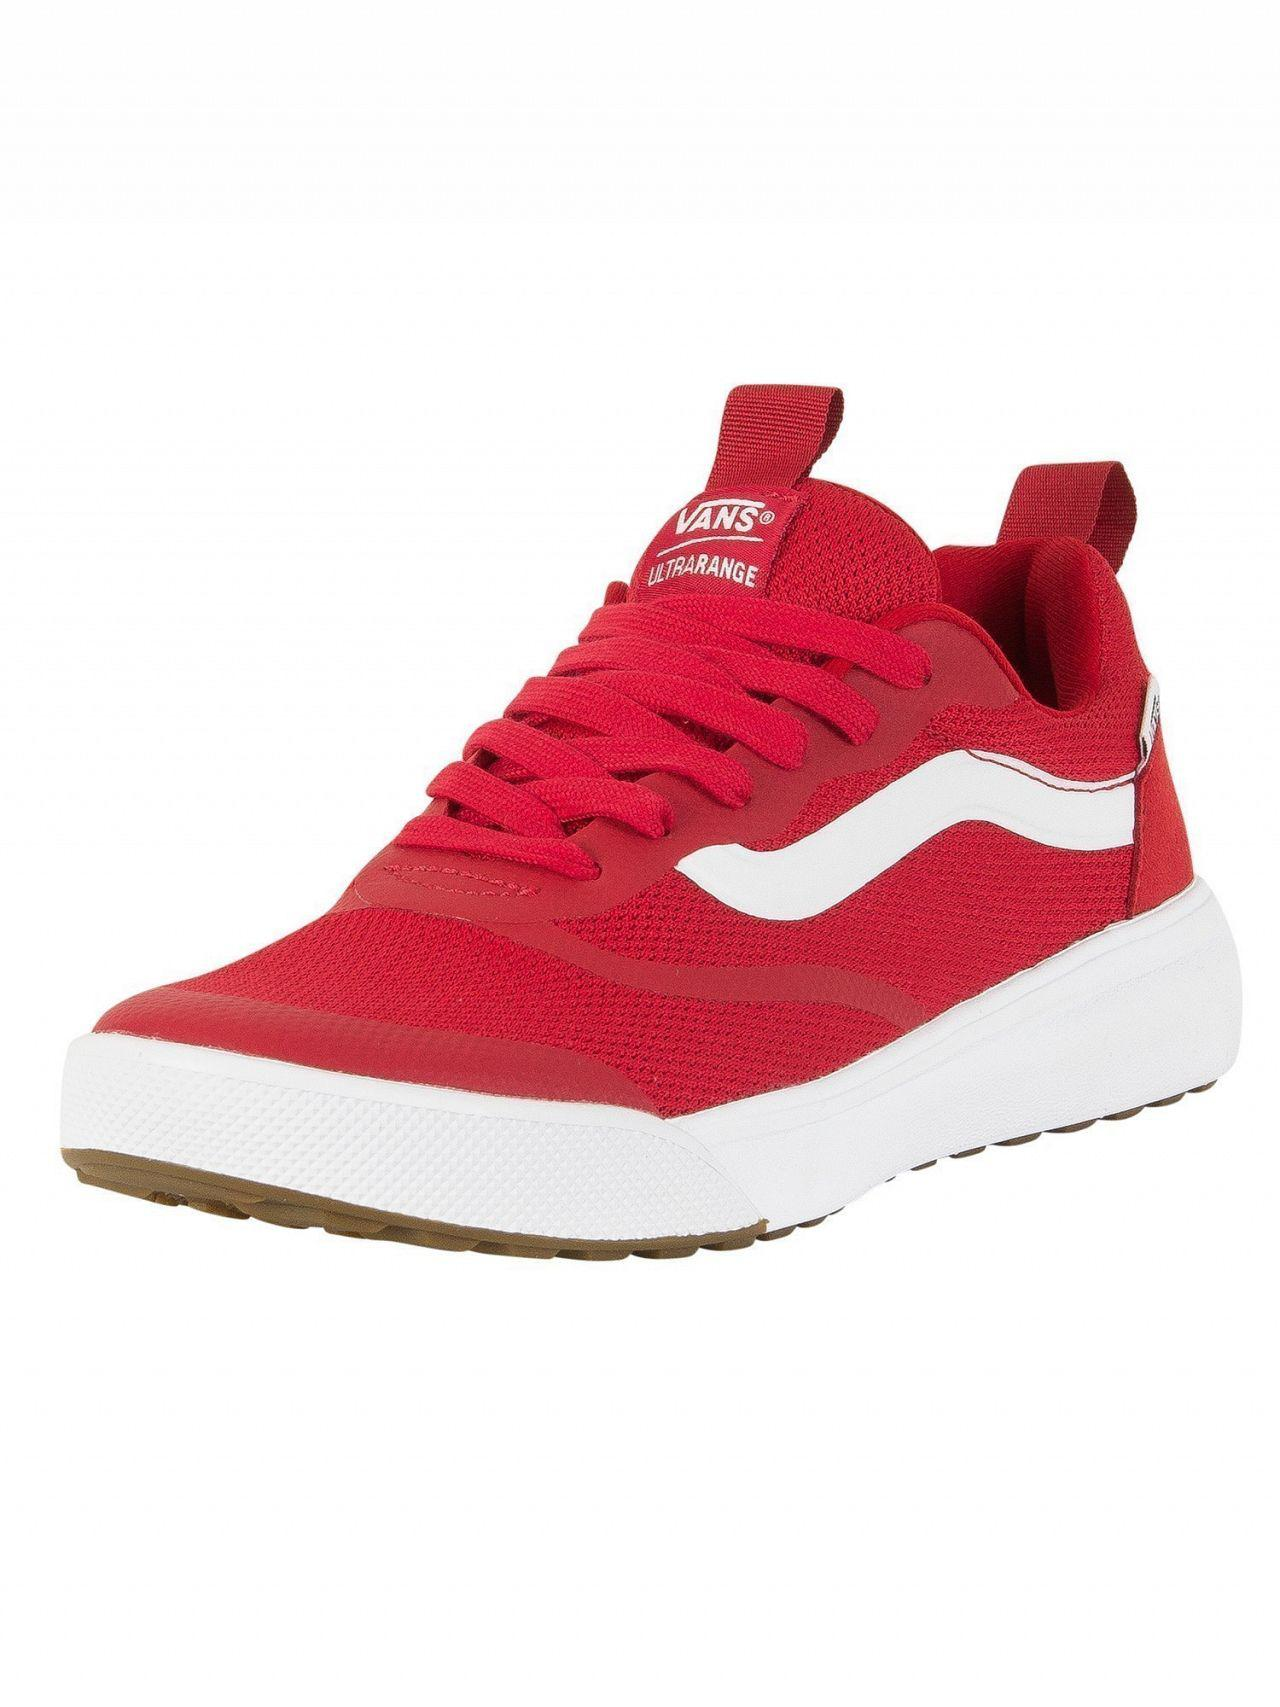 21ce50dc1cb Lyst - Vans Chili Pepper Ultrarange Rapidweld Trainers in Red for Men